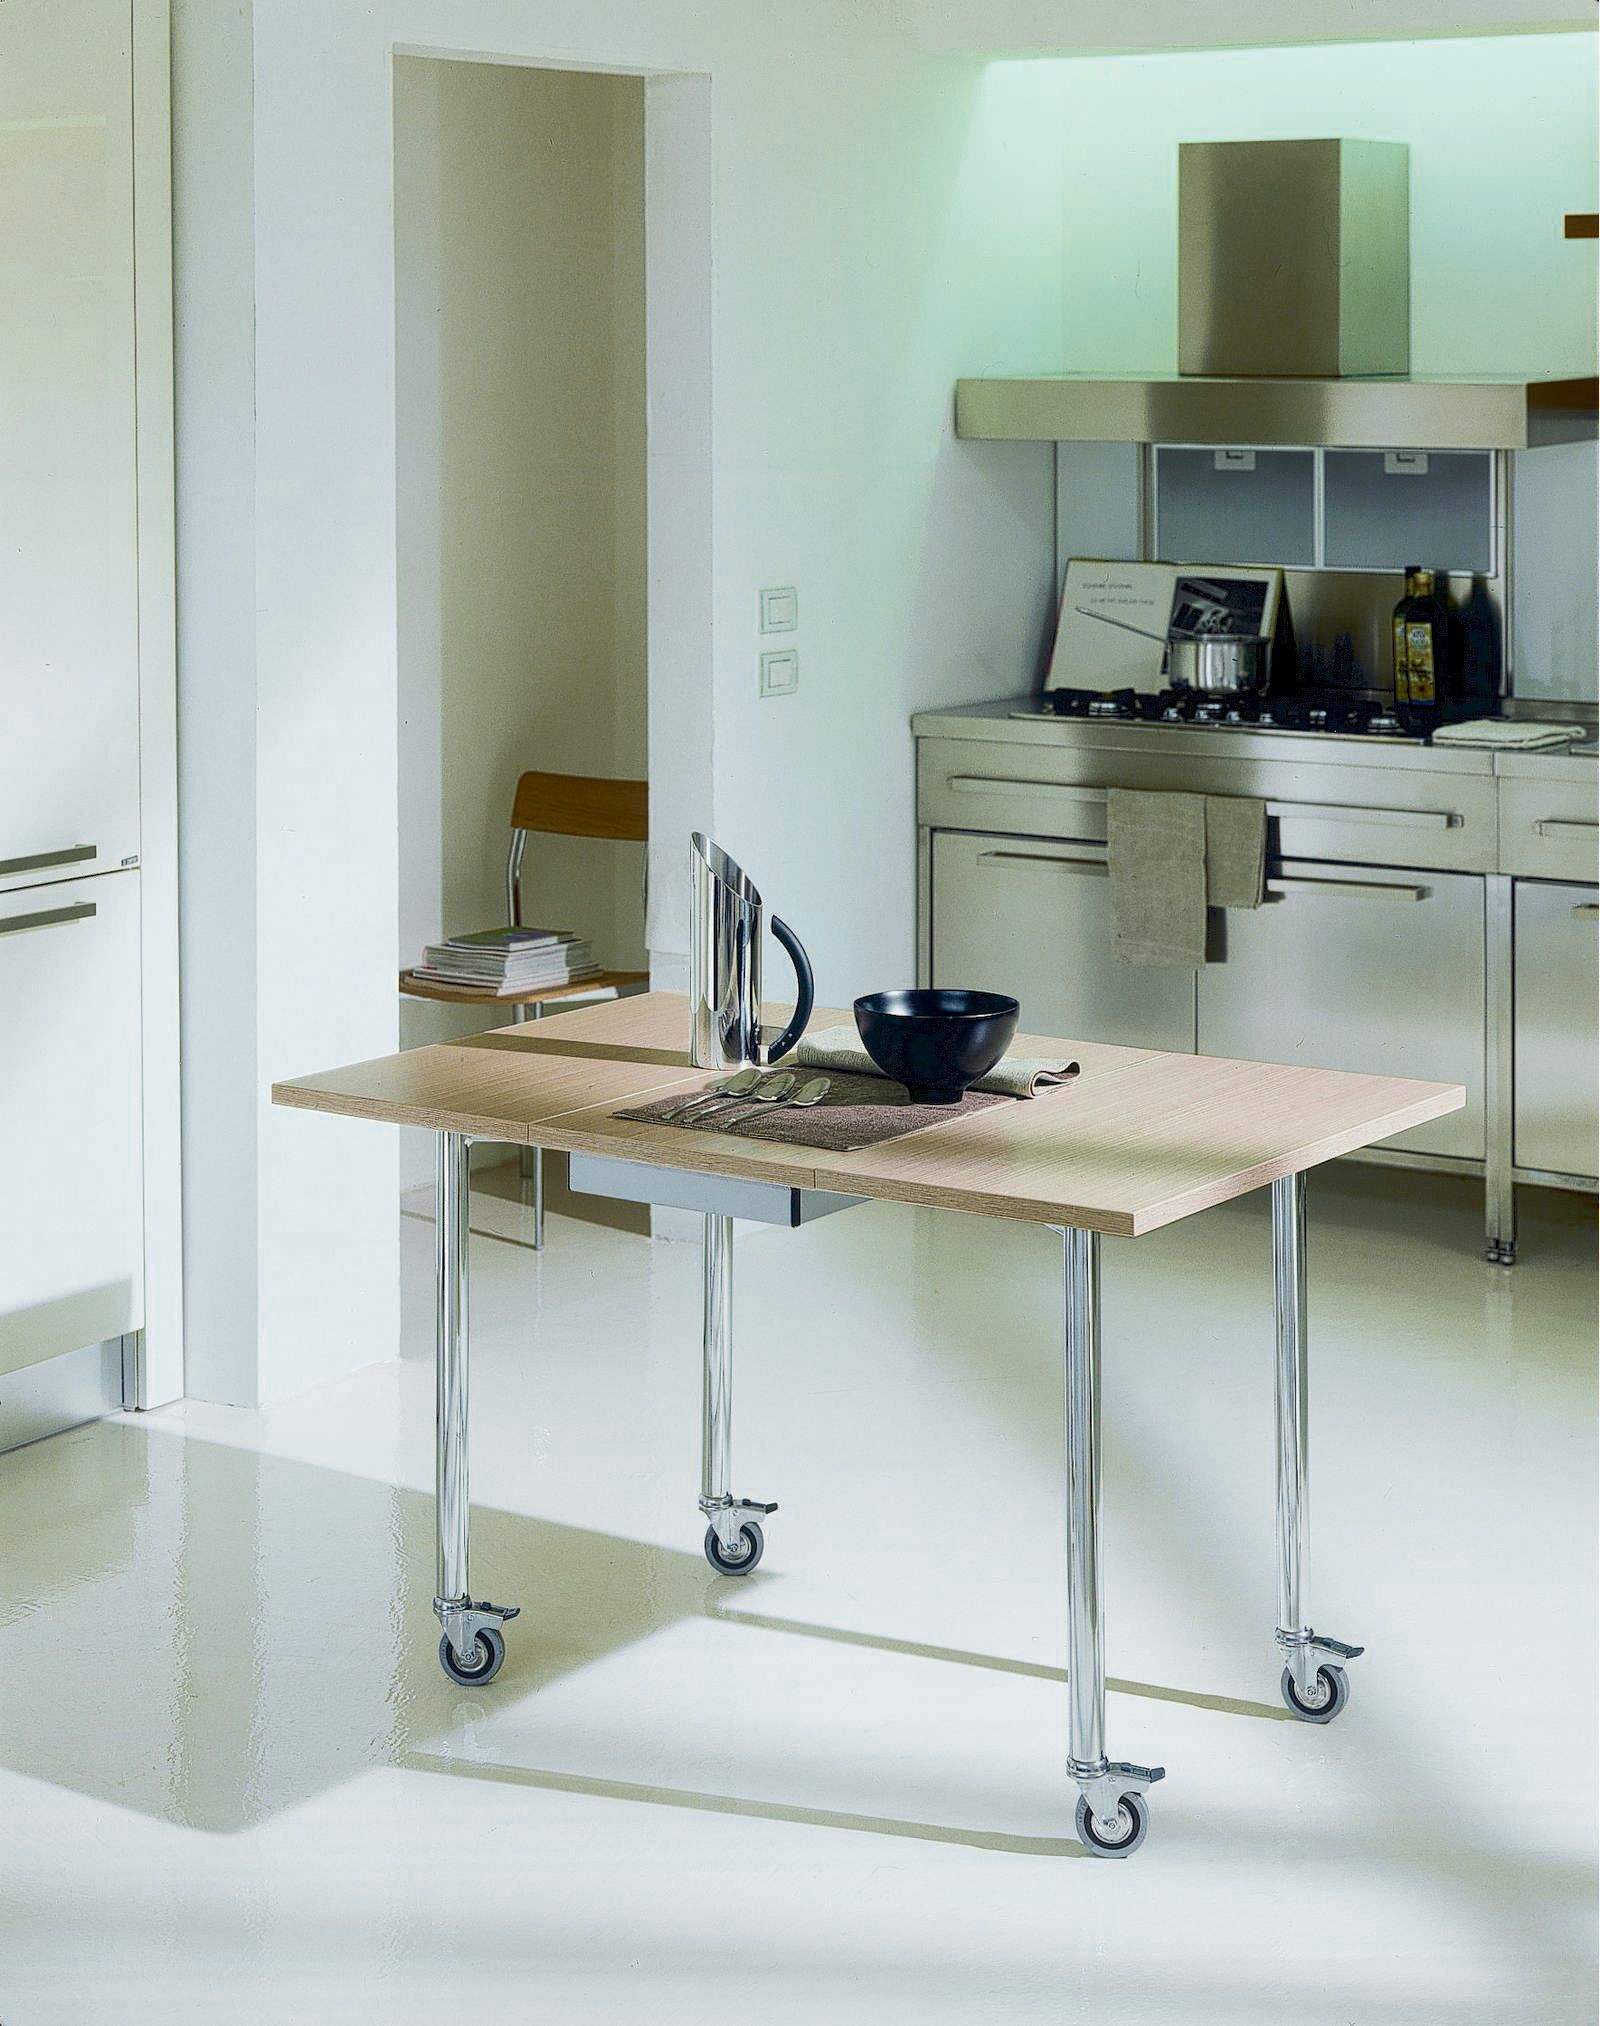 Cucine Con Ruote ~ duylinh for